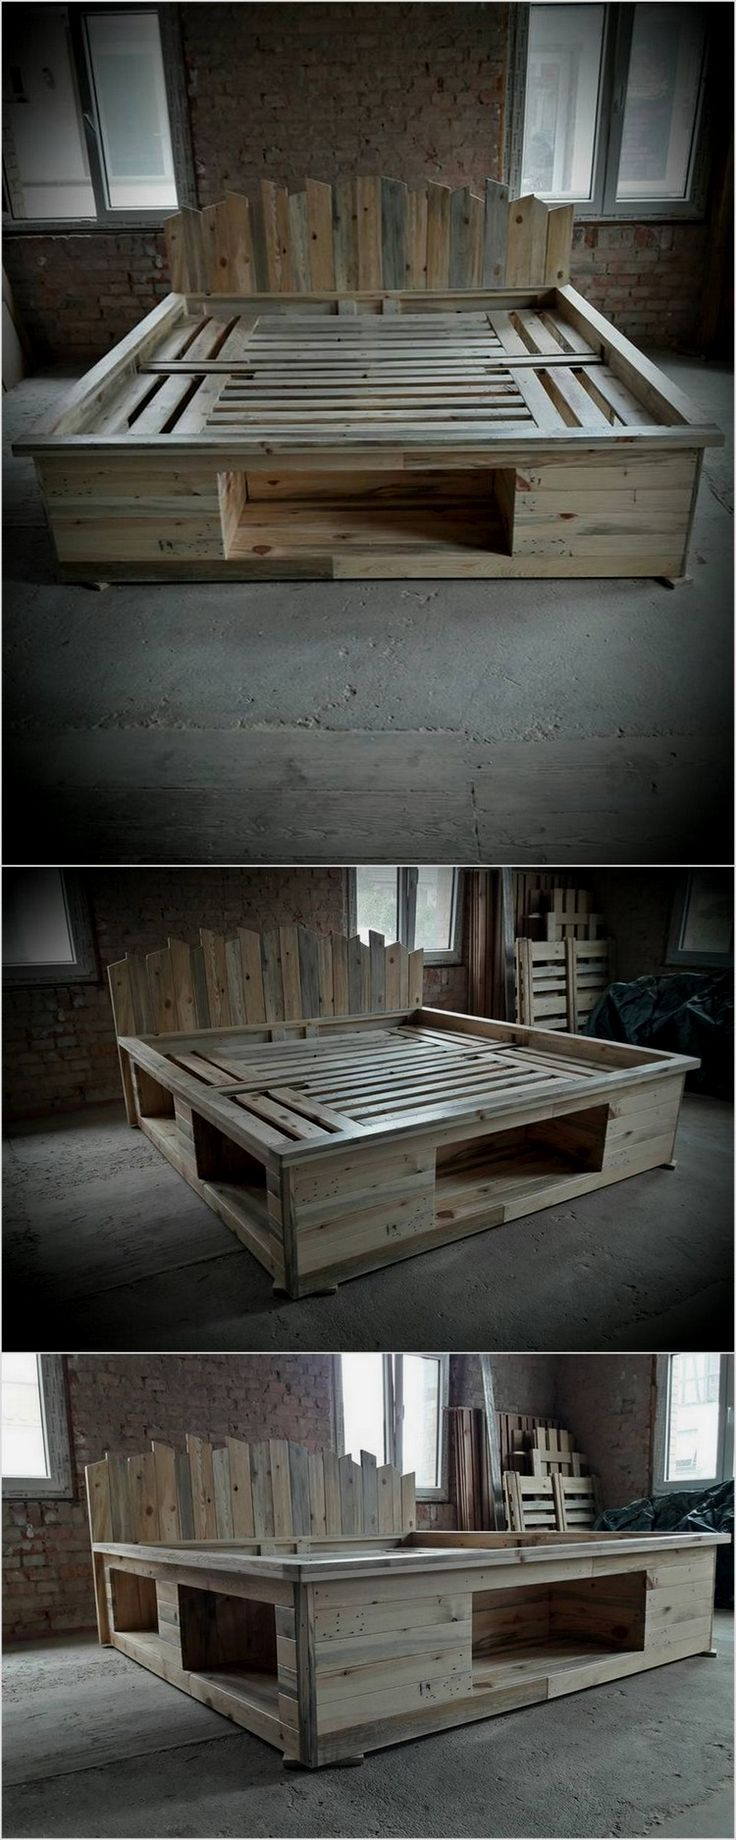 Bedroom furniture you can be pleasantly surprised many people don